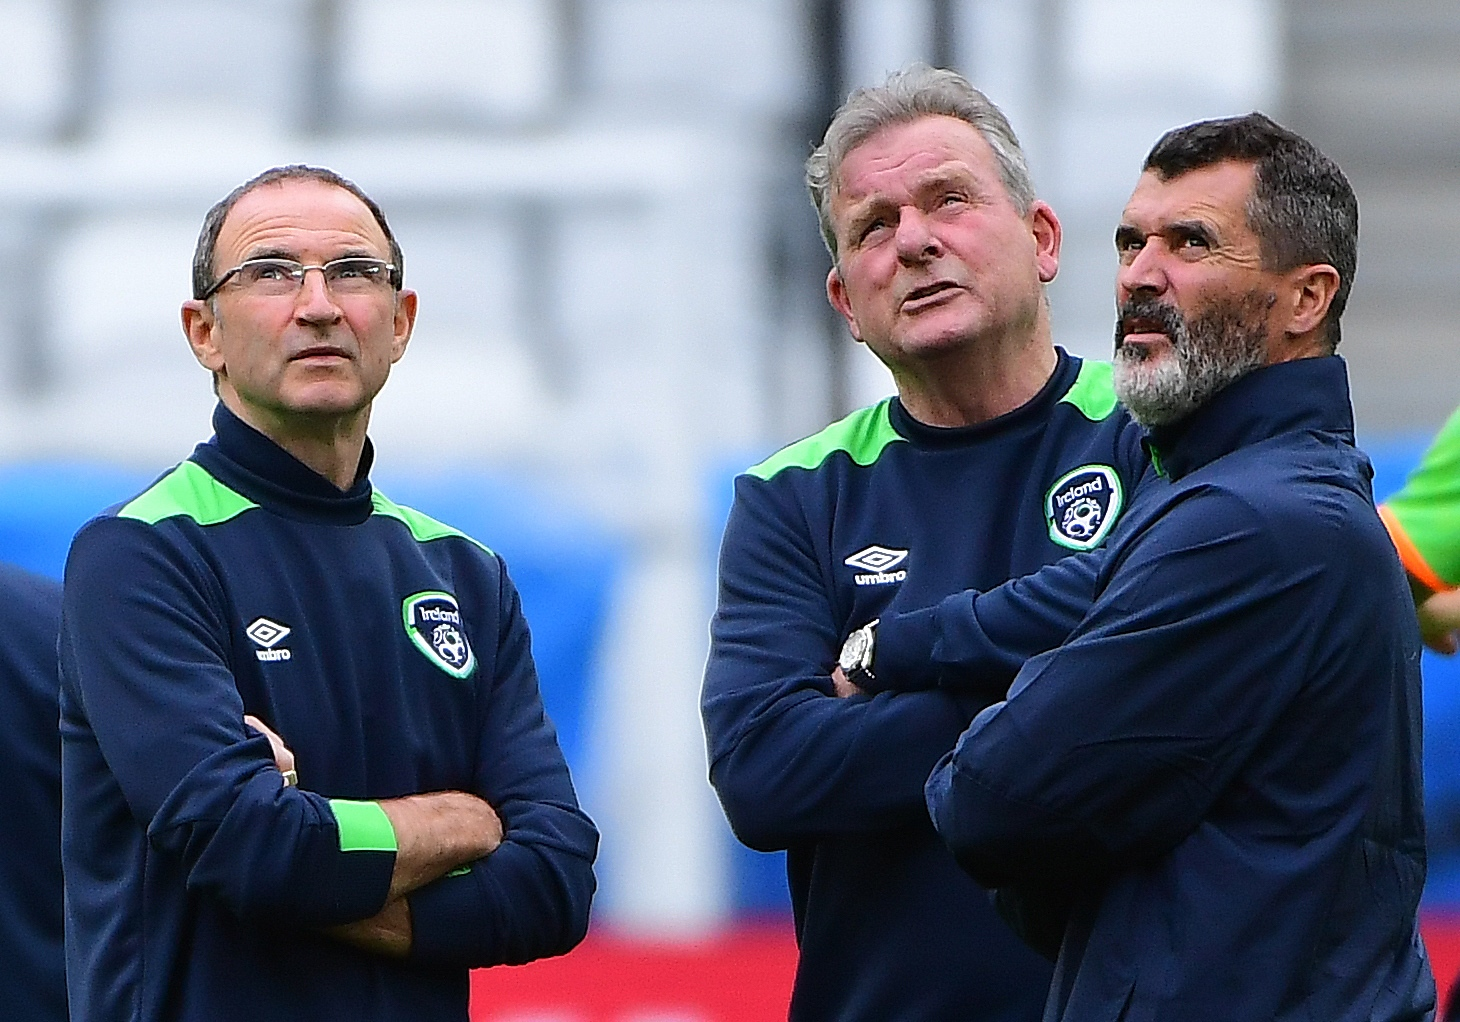 Ireland v Iceland TV channel, date, kick-off time and odds